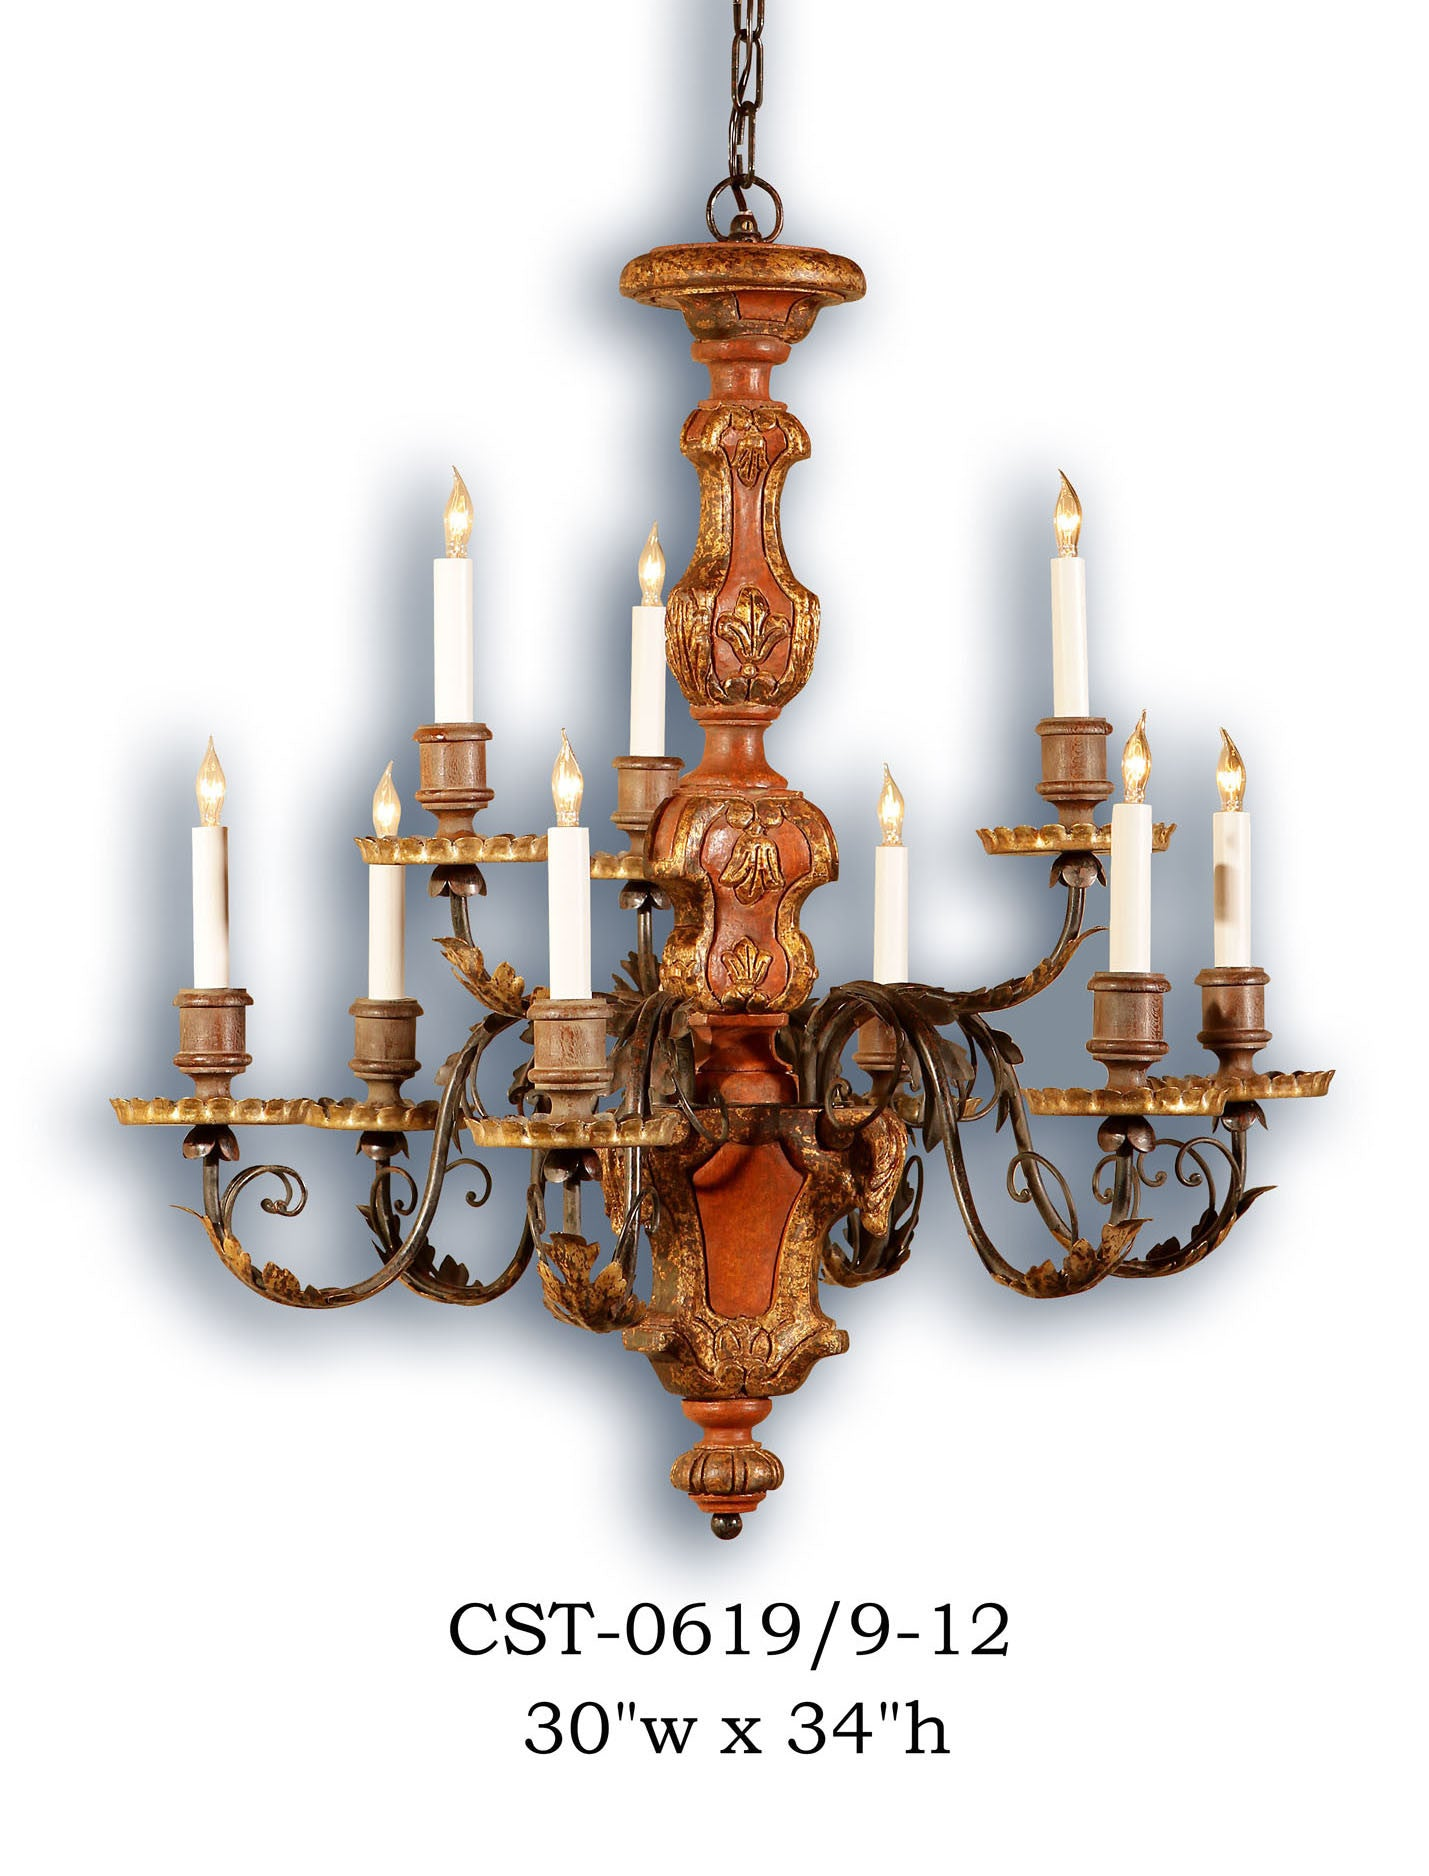 Wood Chandelier - CST-0619/9-12Chandelier - Graham's Lighting Memphis, TN